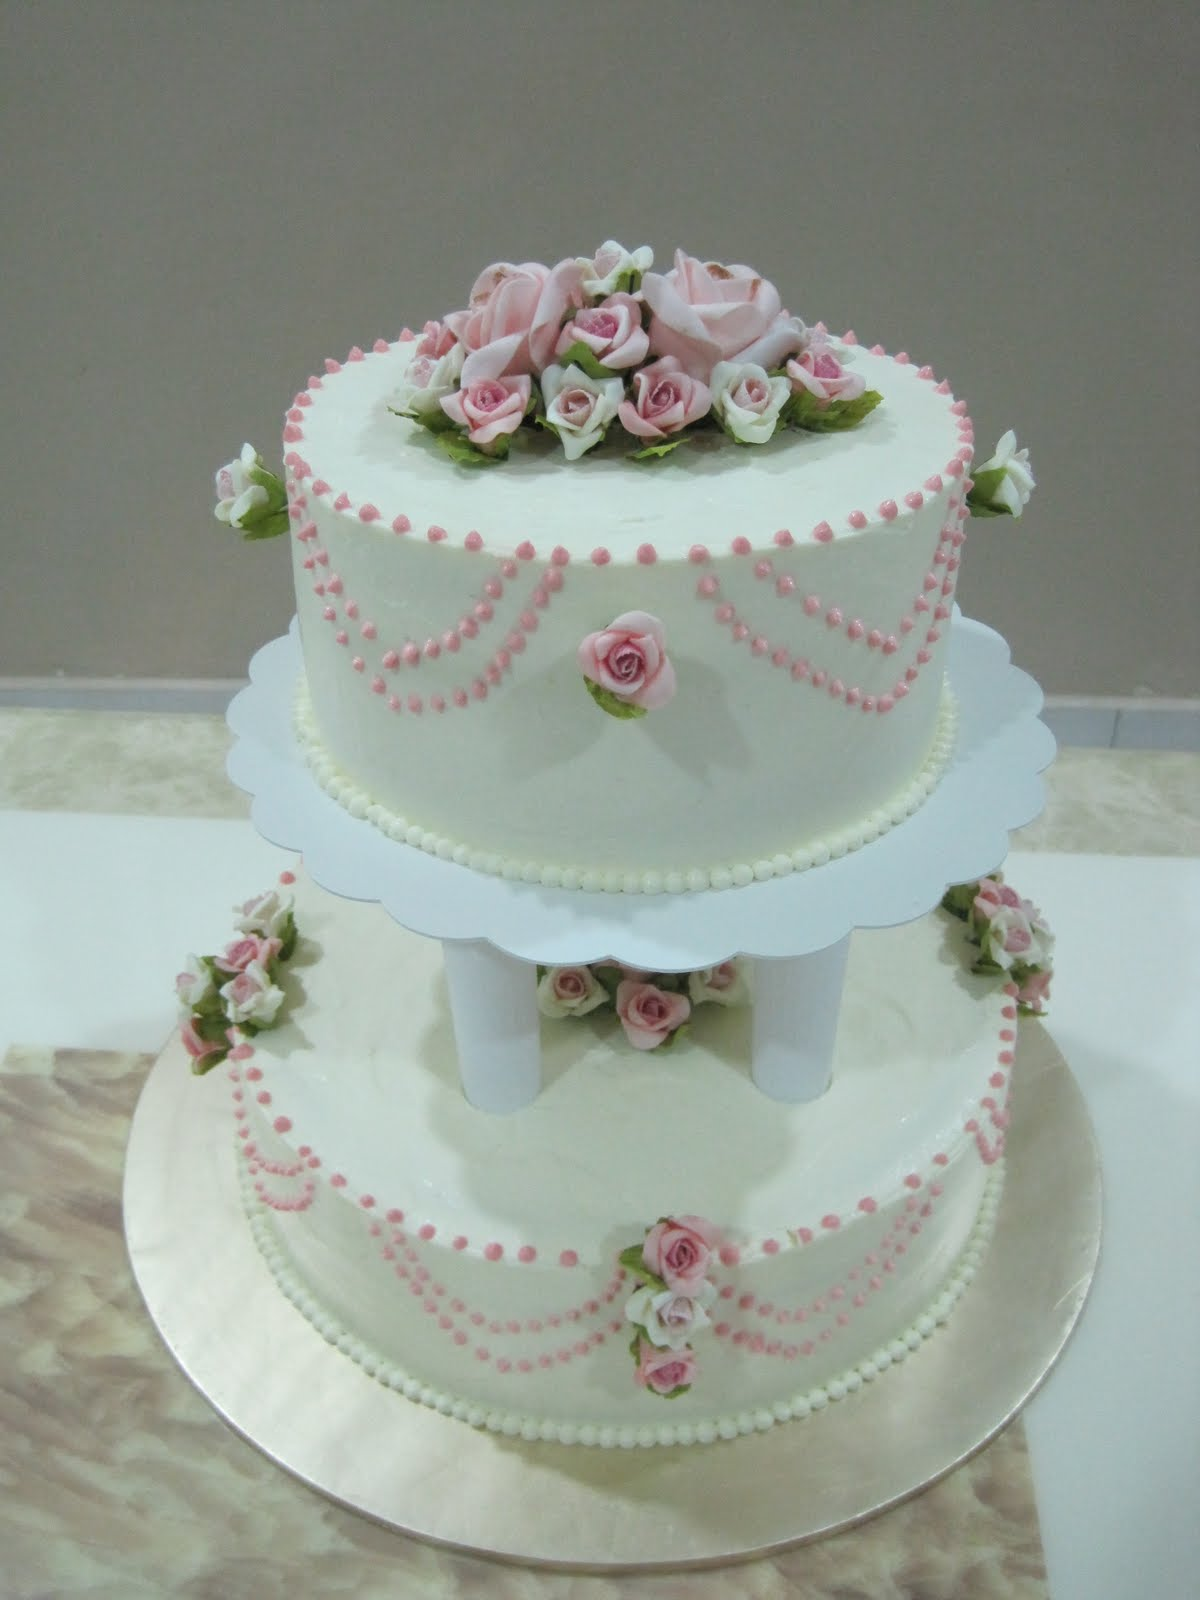 Sweet Temptations Homemade Cakes & Pastry Wedding Cake